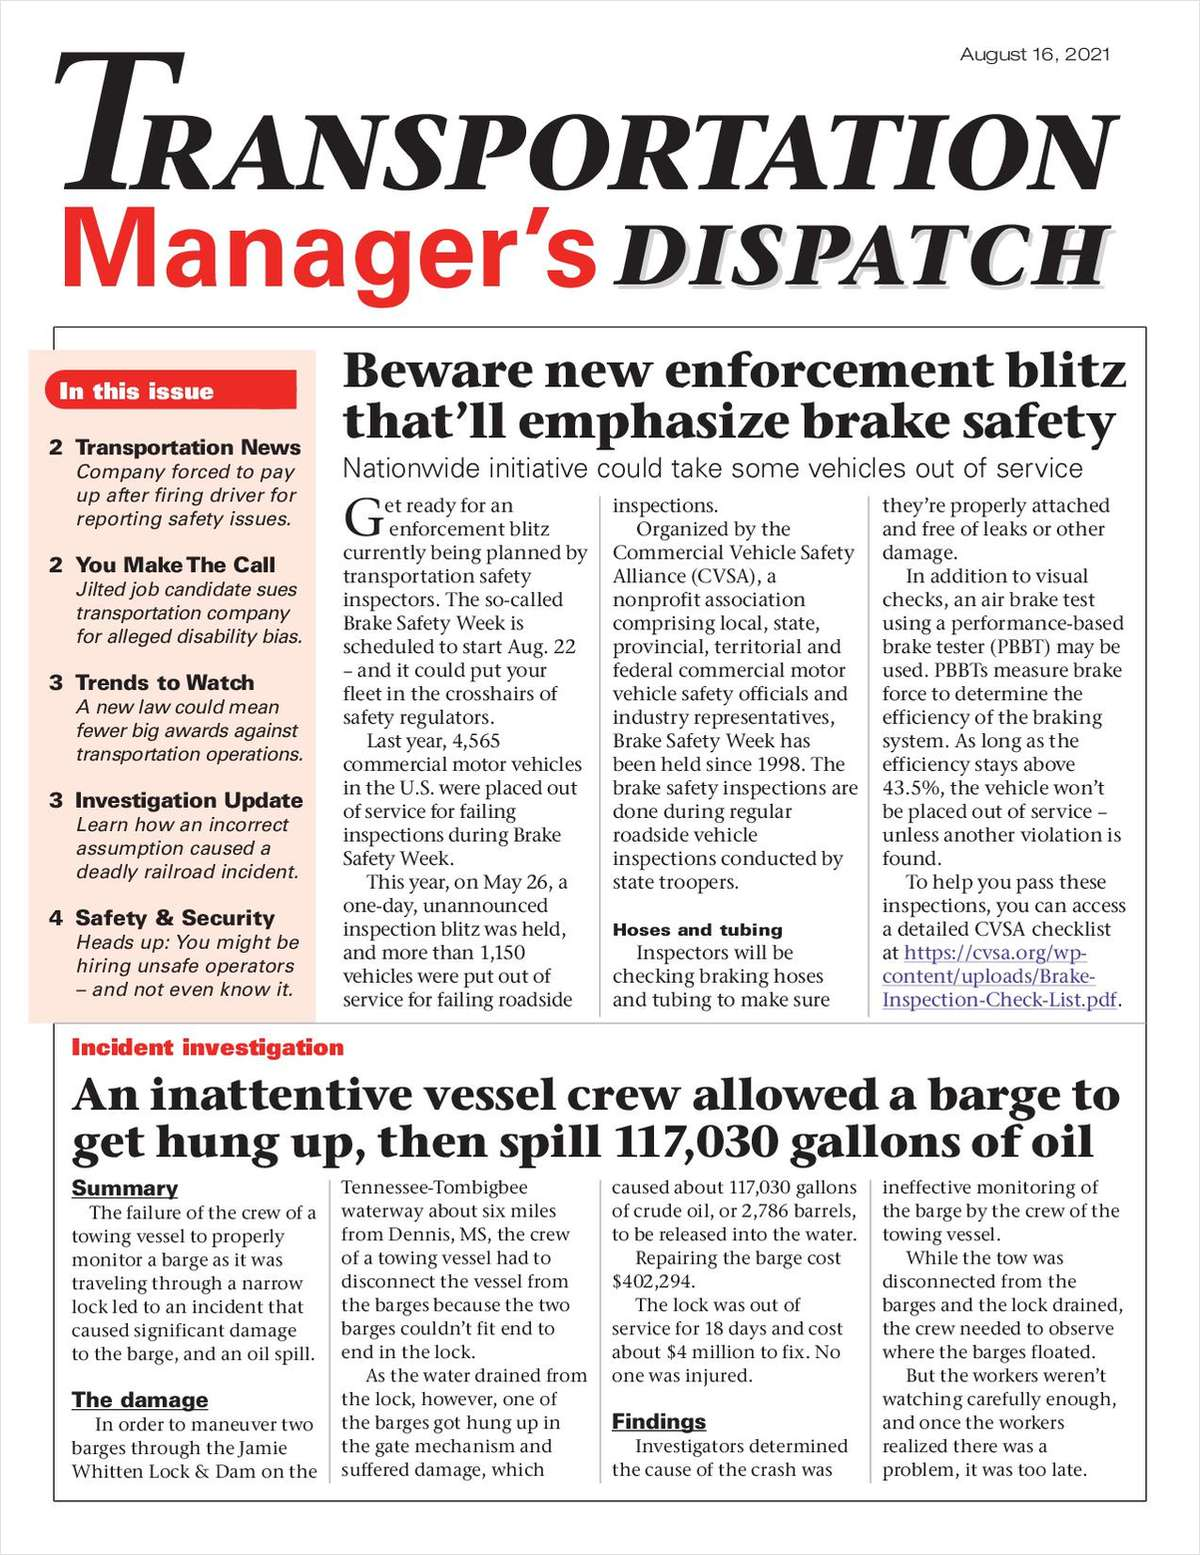 Transportation Manager's Dispatch Newsletter: August 16 Issue